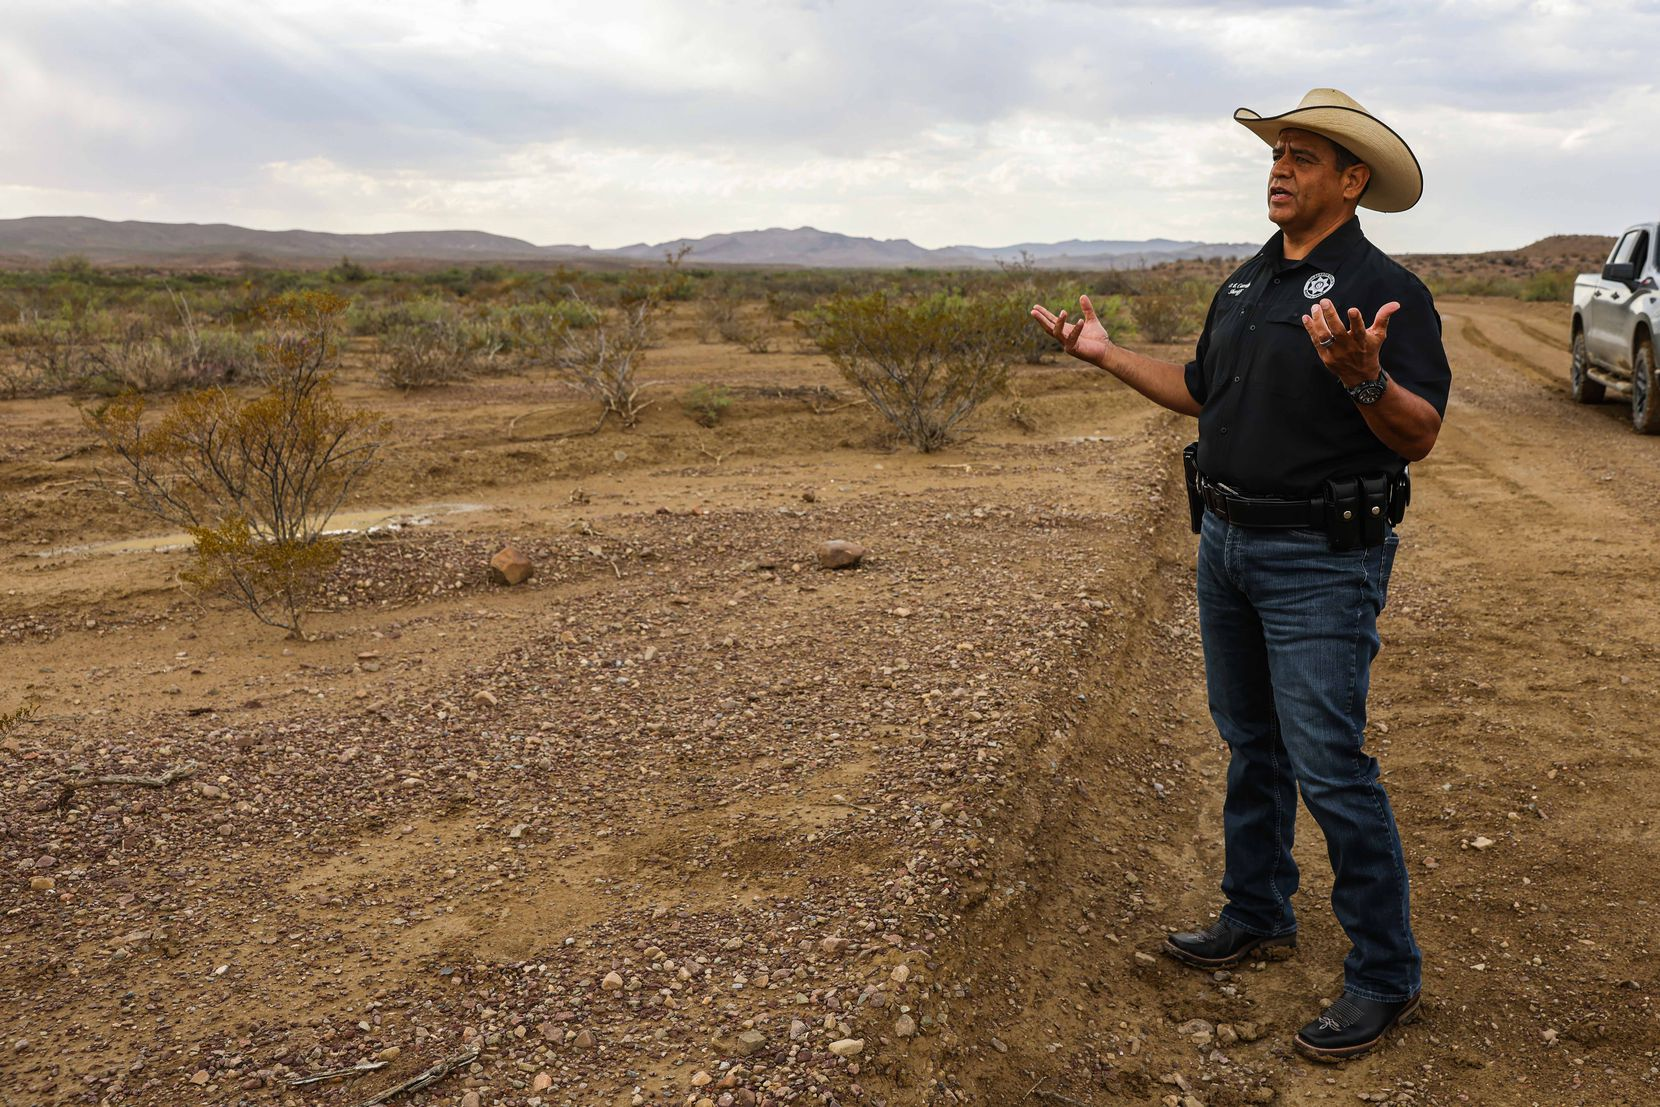 Culberson County Sheriff Oscar Carrillo stands by the spot where the body of 15-year-old Christian was found on June 21, 2021.